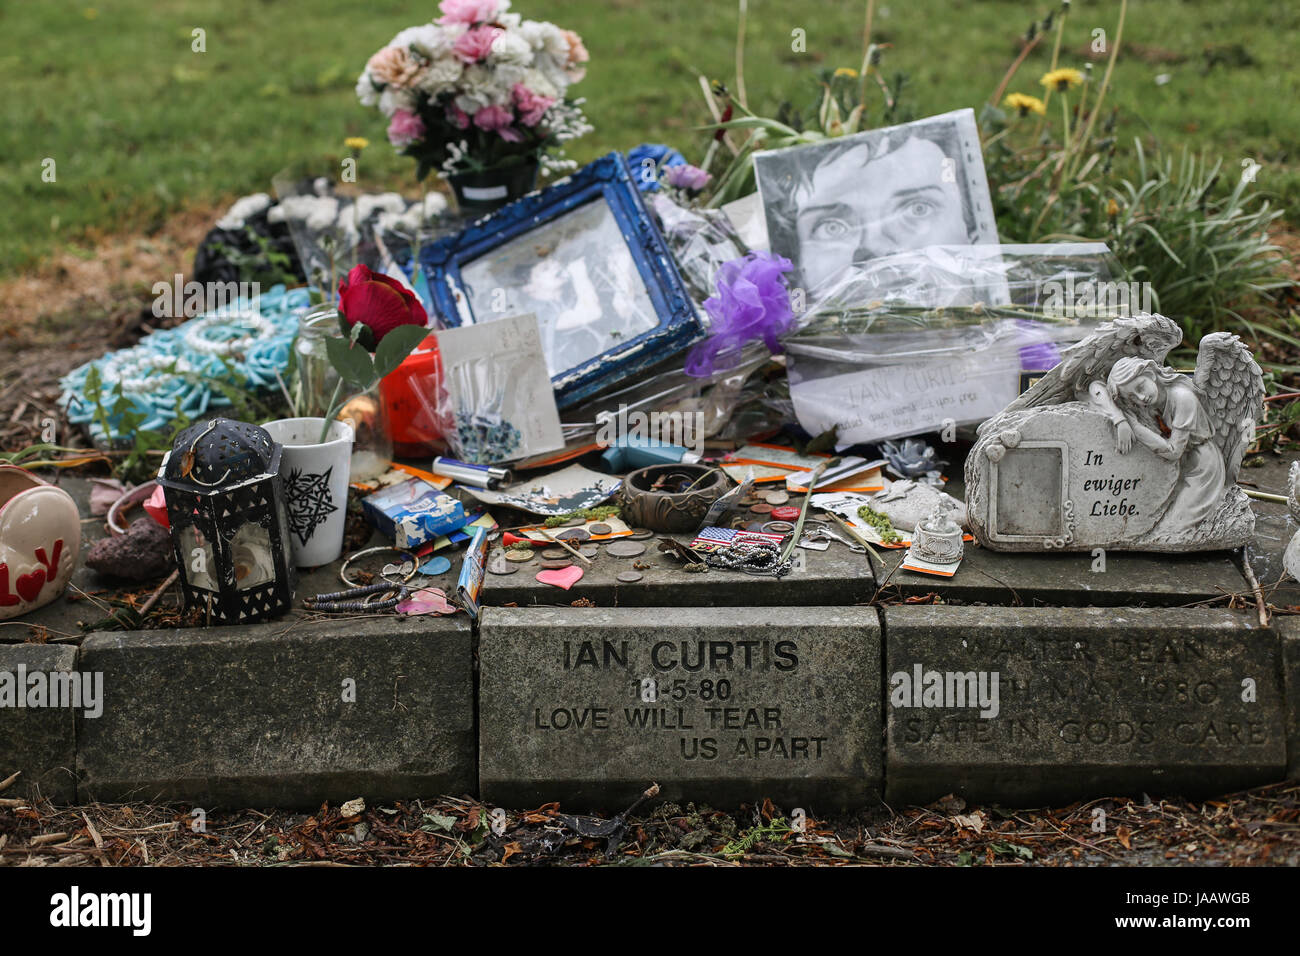 Ian Curtis' memorial stone at  Macclesfield Crematorium in Macclesfield, Cheshire, UK. The English singer-songwriter - Stock Image